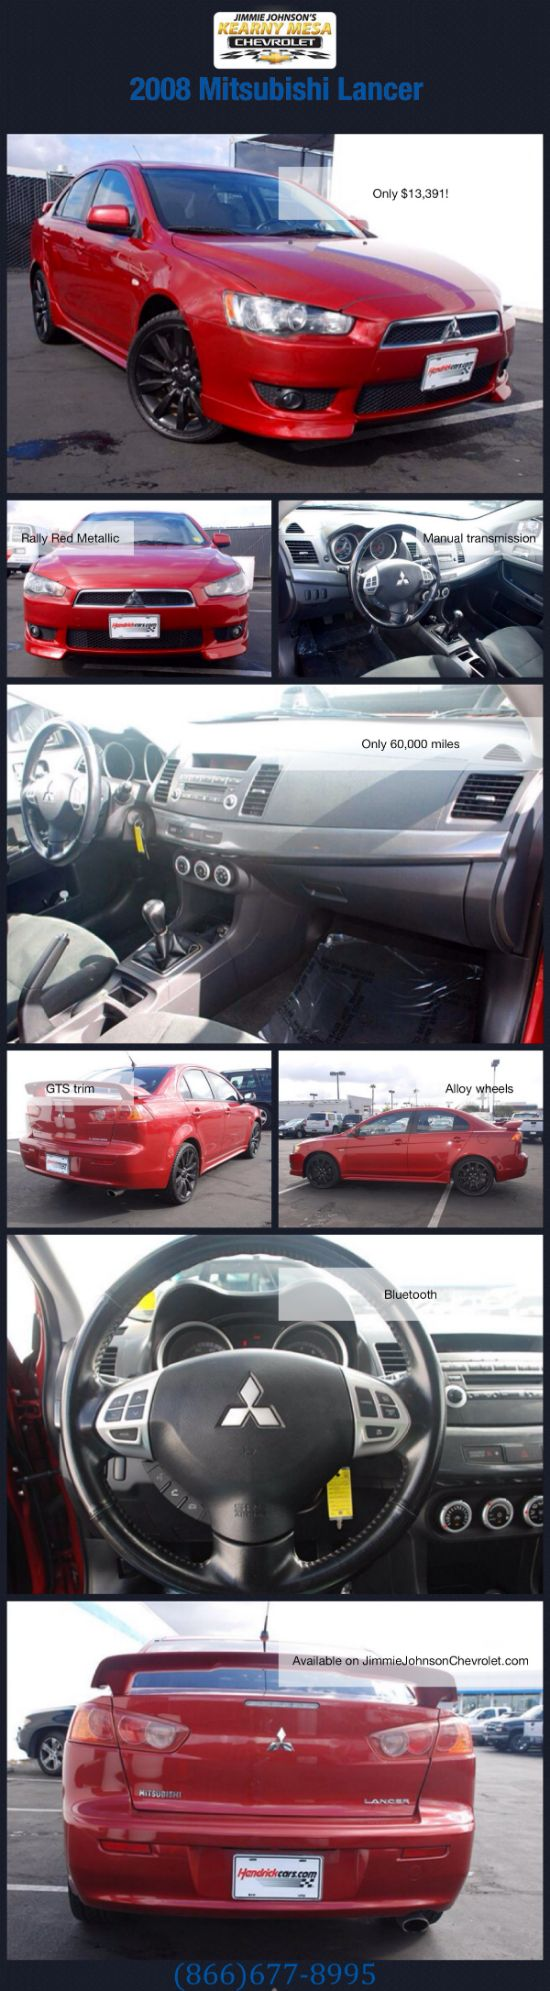 Check out this 2008 Mitsubishi Lancer for sale at Jimmie Johnson's Kearny Mesa Chevrolet! Click for more photos and specs on JimmieJohnsonChevrolet.com or call our internet sales department at (866)677-8995!